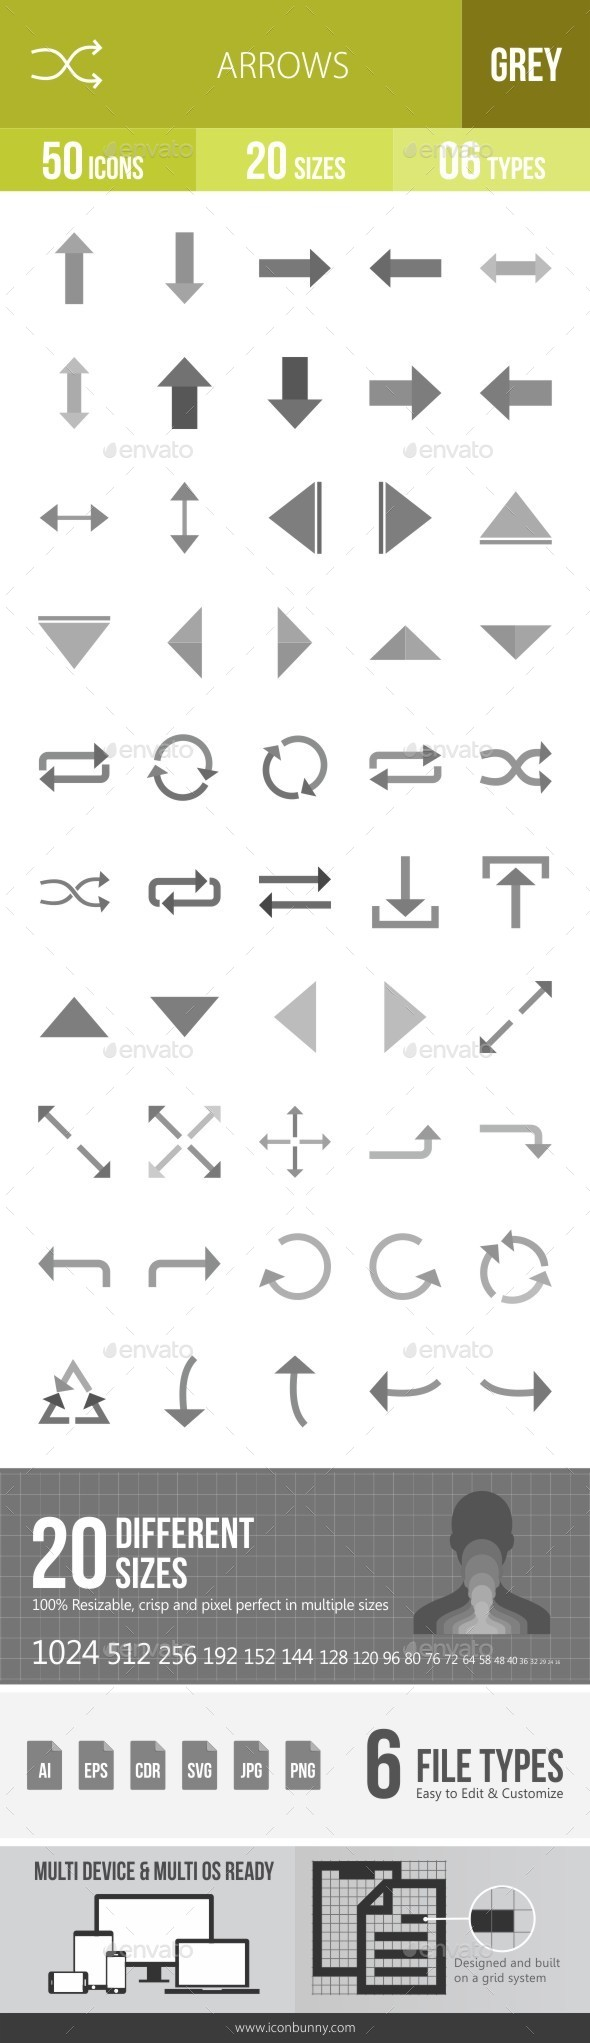 Arrows Greyscale Icons - Icons